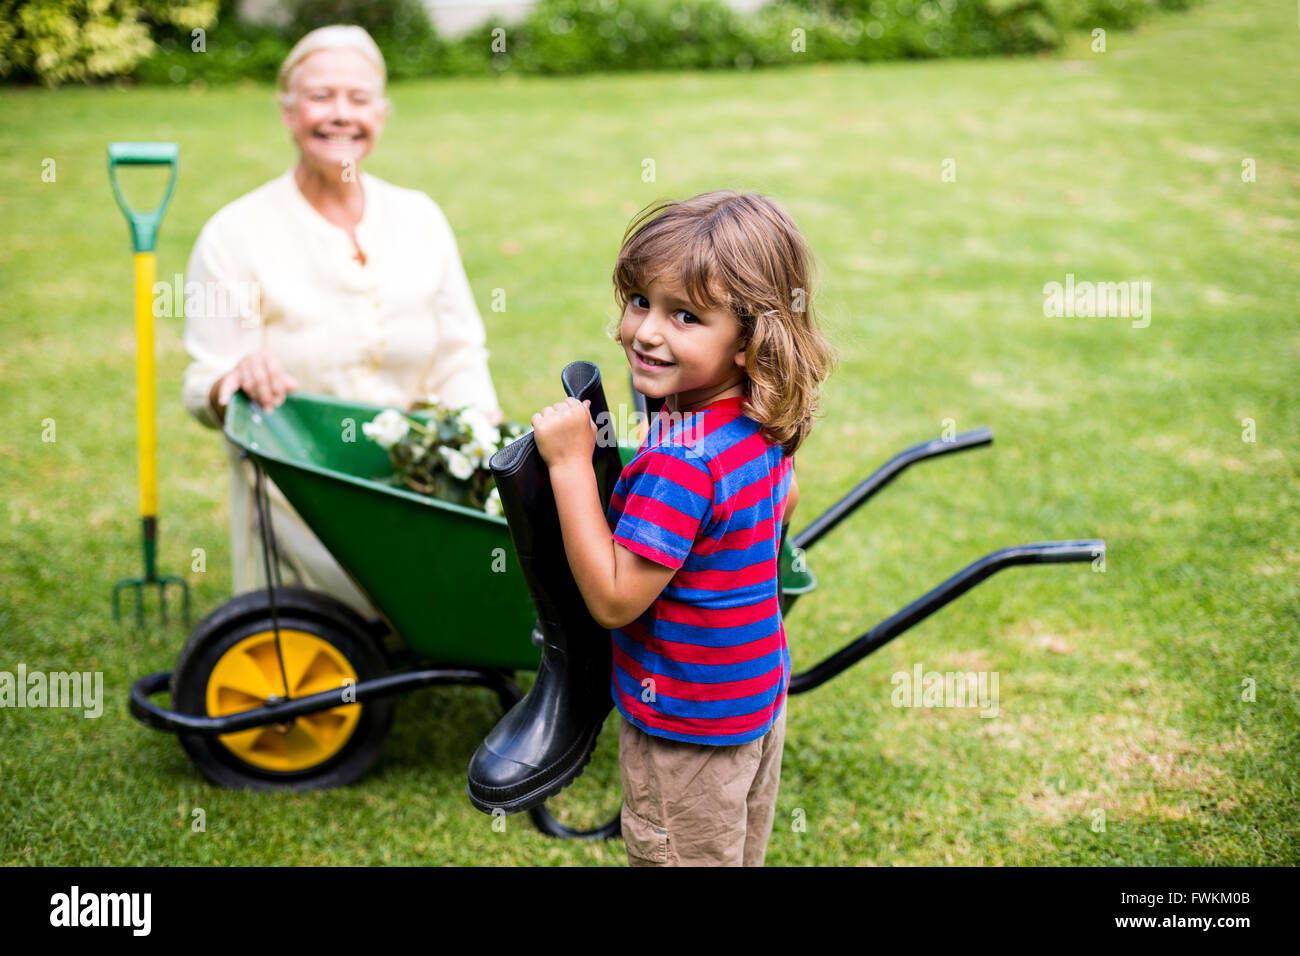 granny boy Boy holding wellington boots besides granny in yard Stock Photo